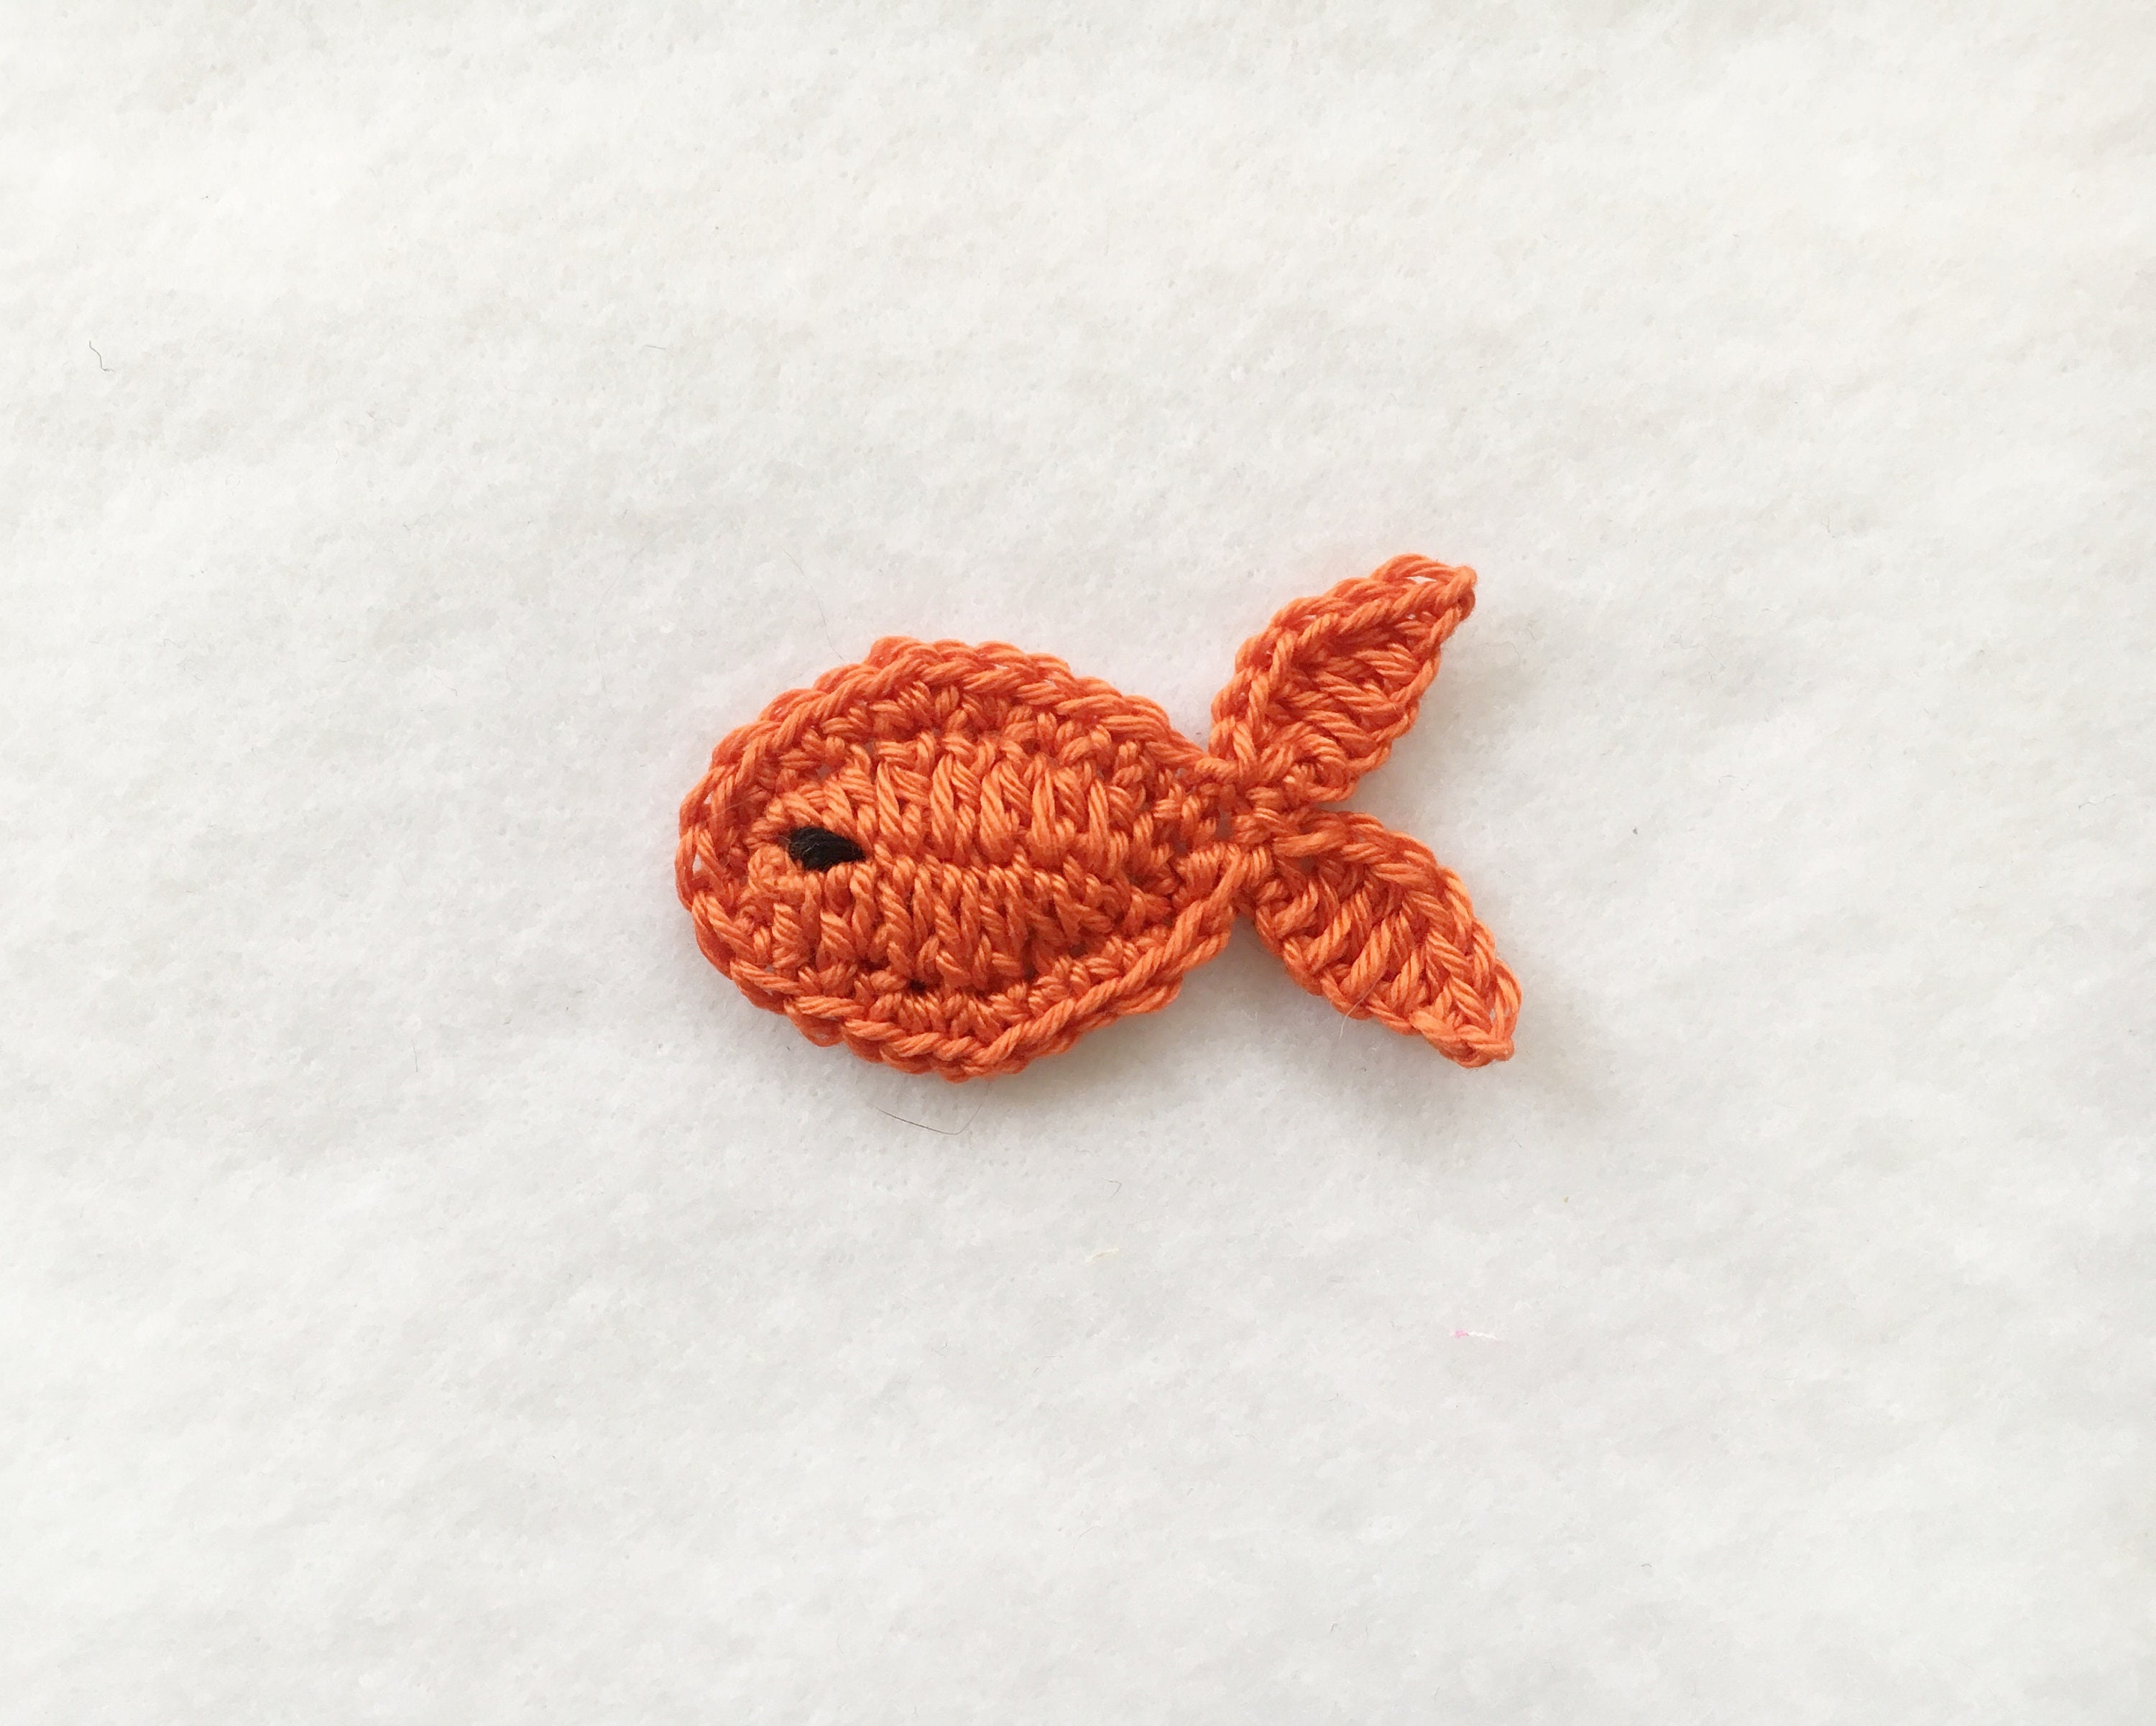 Crochet fish appliquesSew on appliques for babyCrochet sea | Etsy